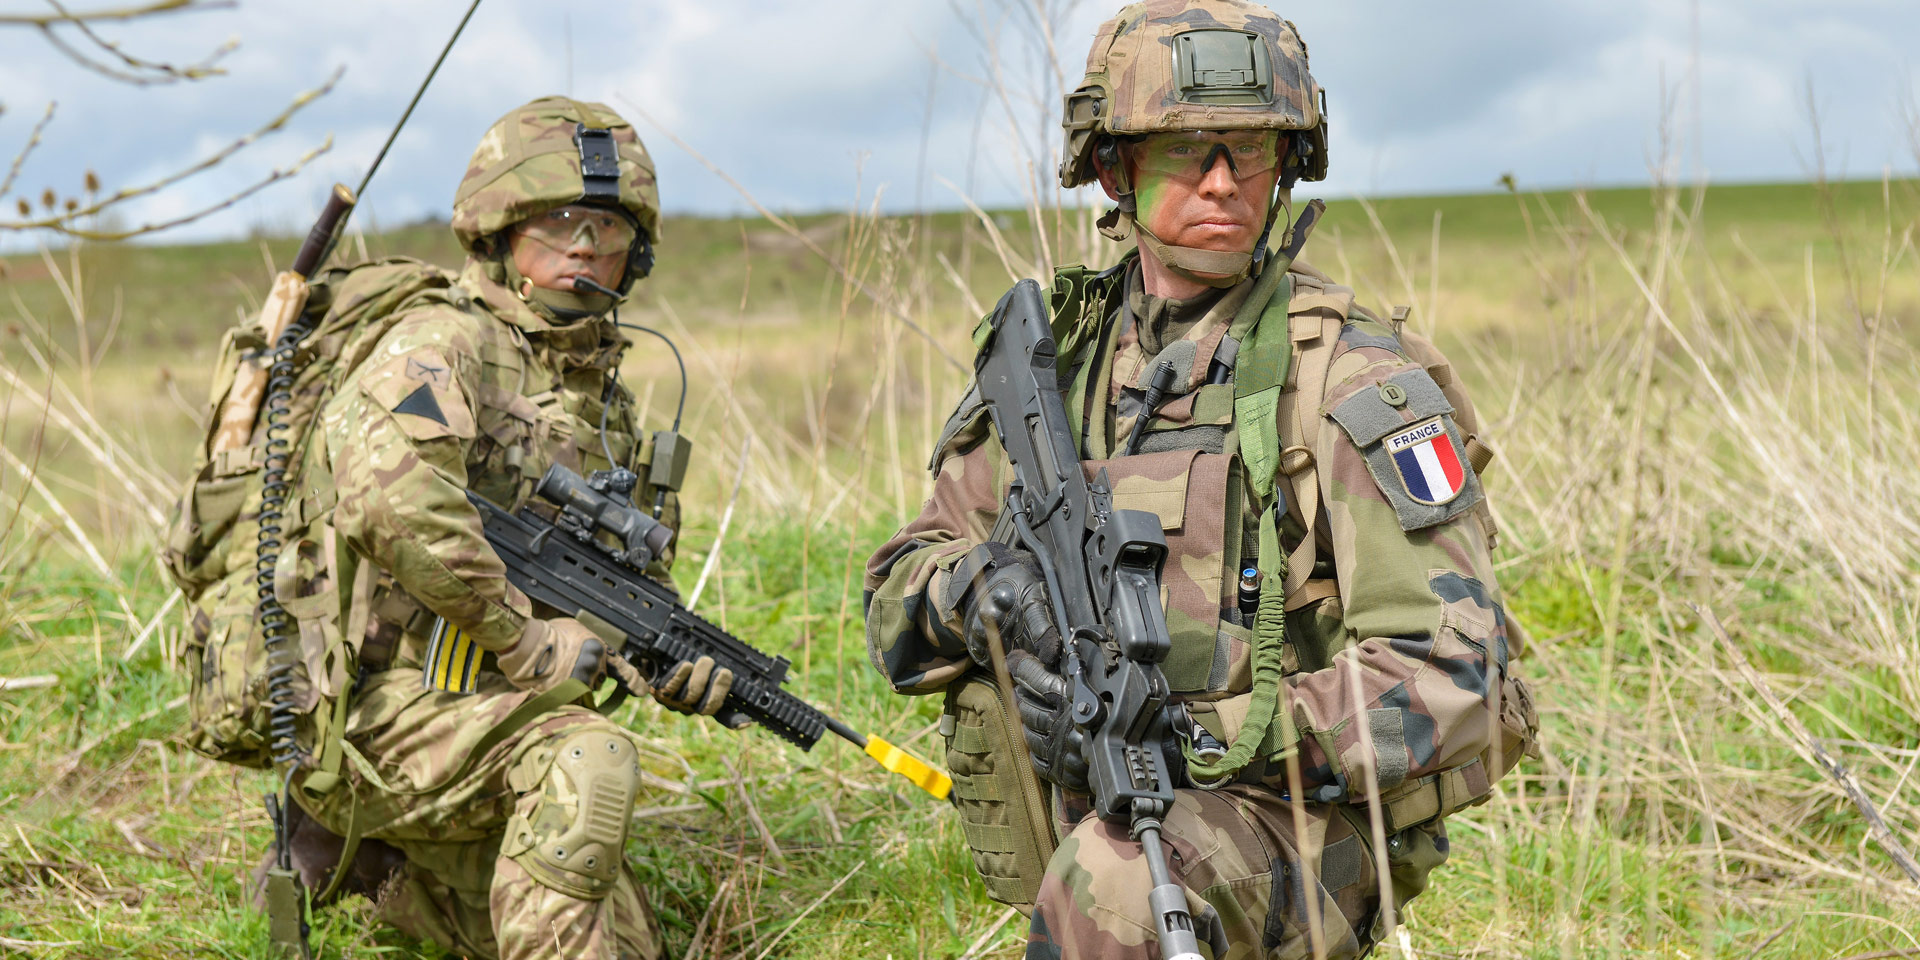 British and French soldiers work together to hold a vital crossing point, 2016